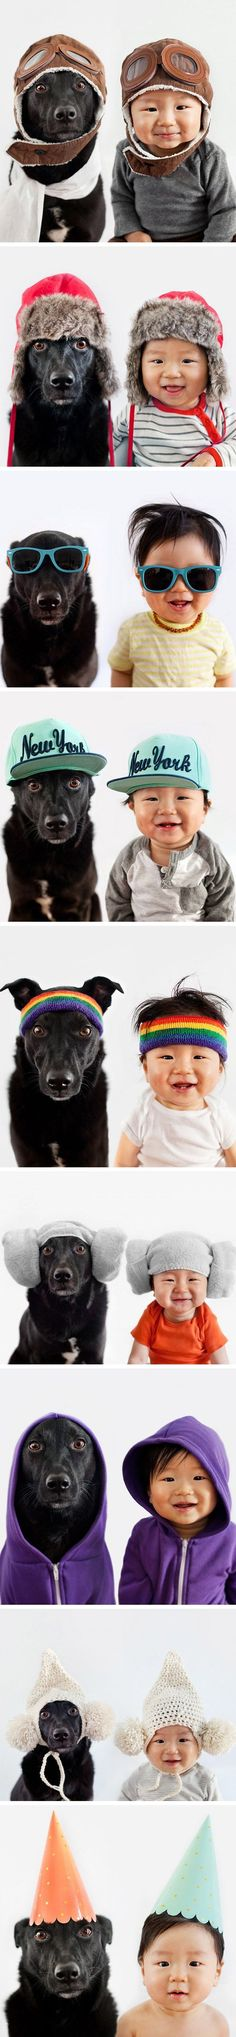 Oh my goodness!! I have to do this with Eulogio and Mika!! I need matching hats... And sweat bands!